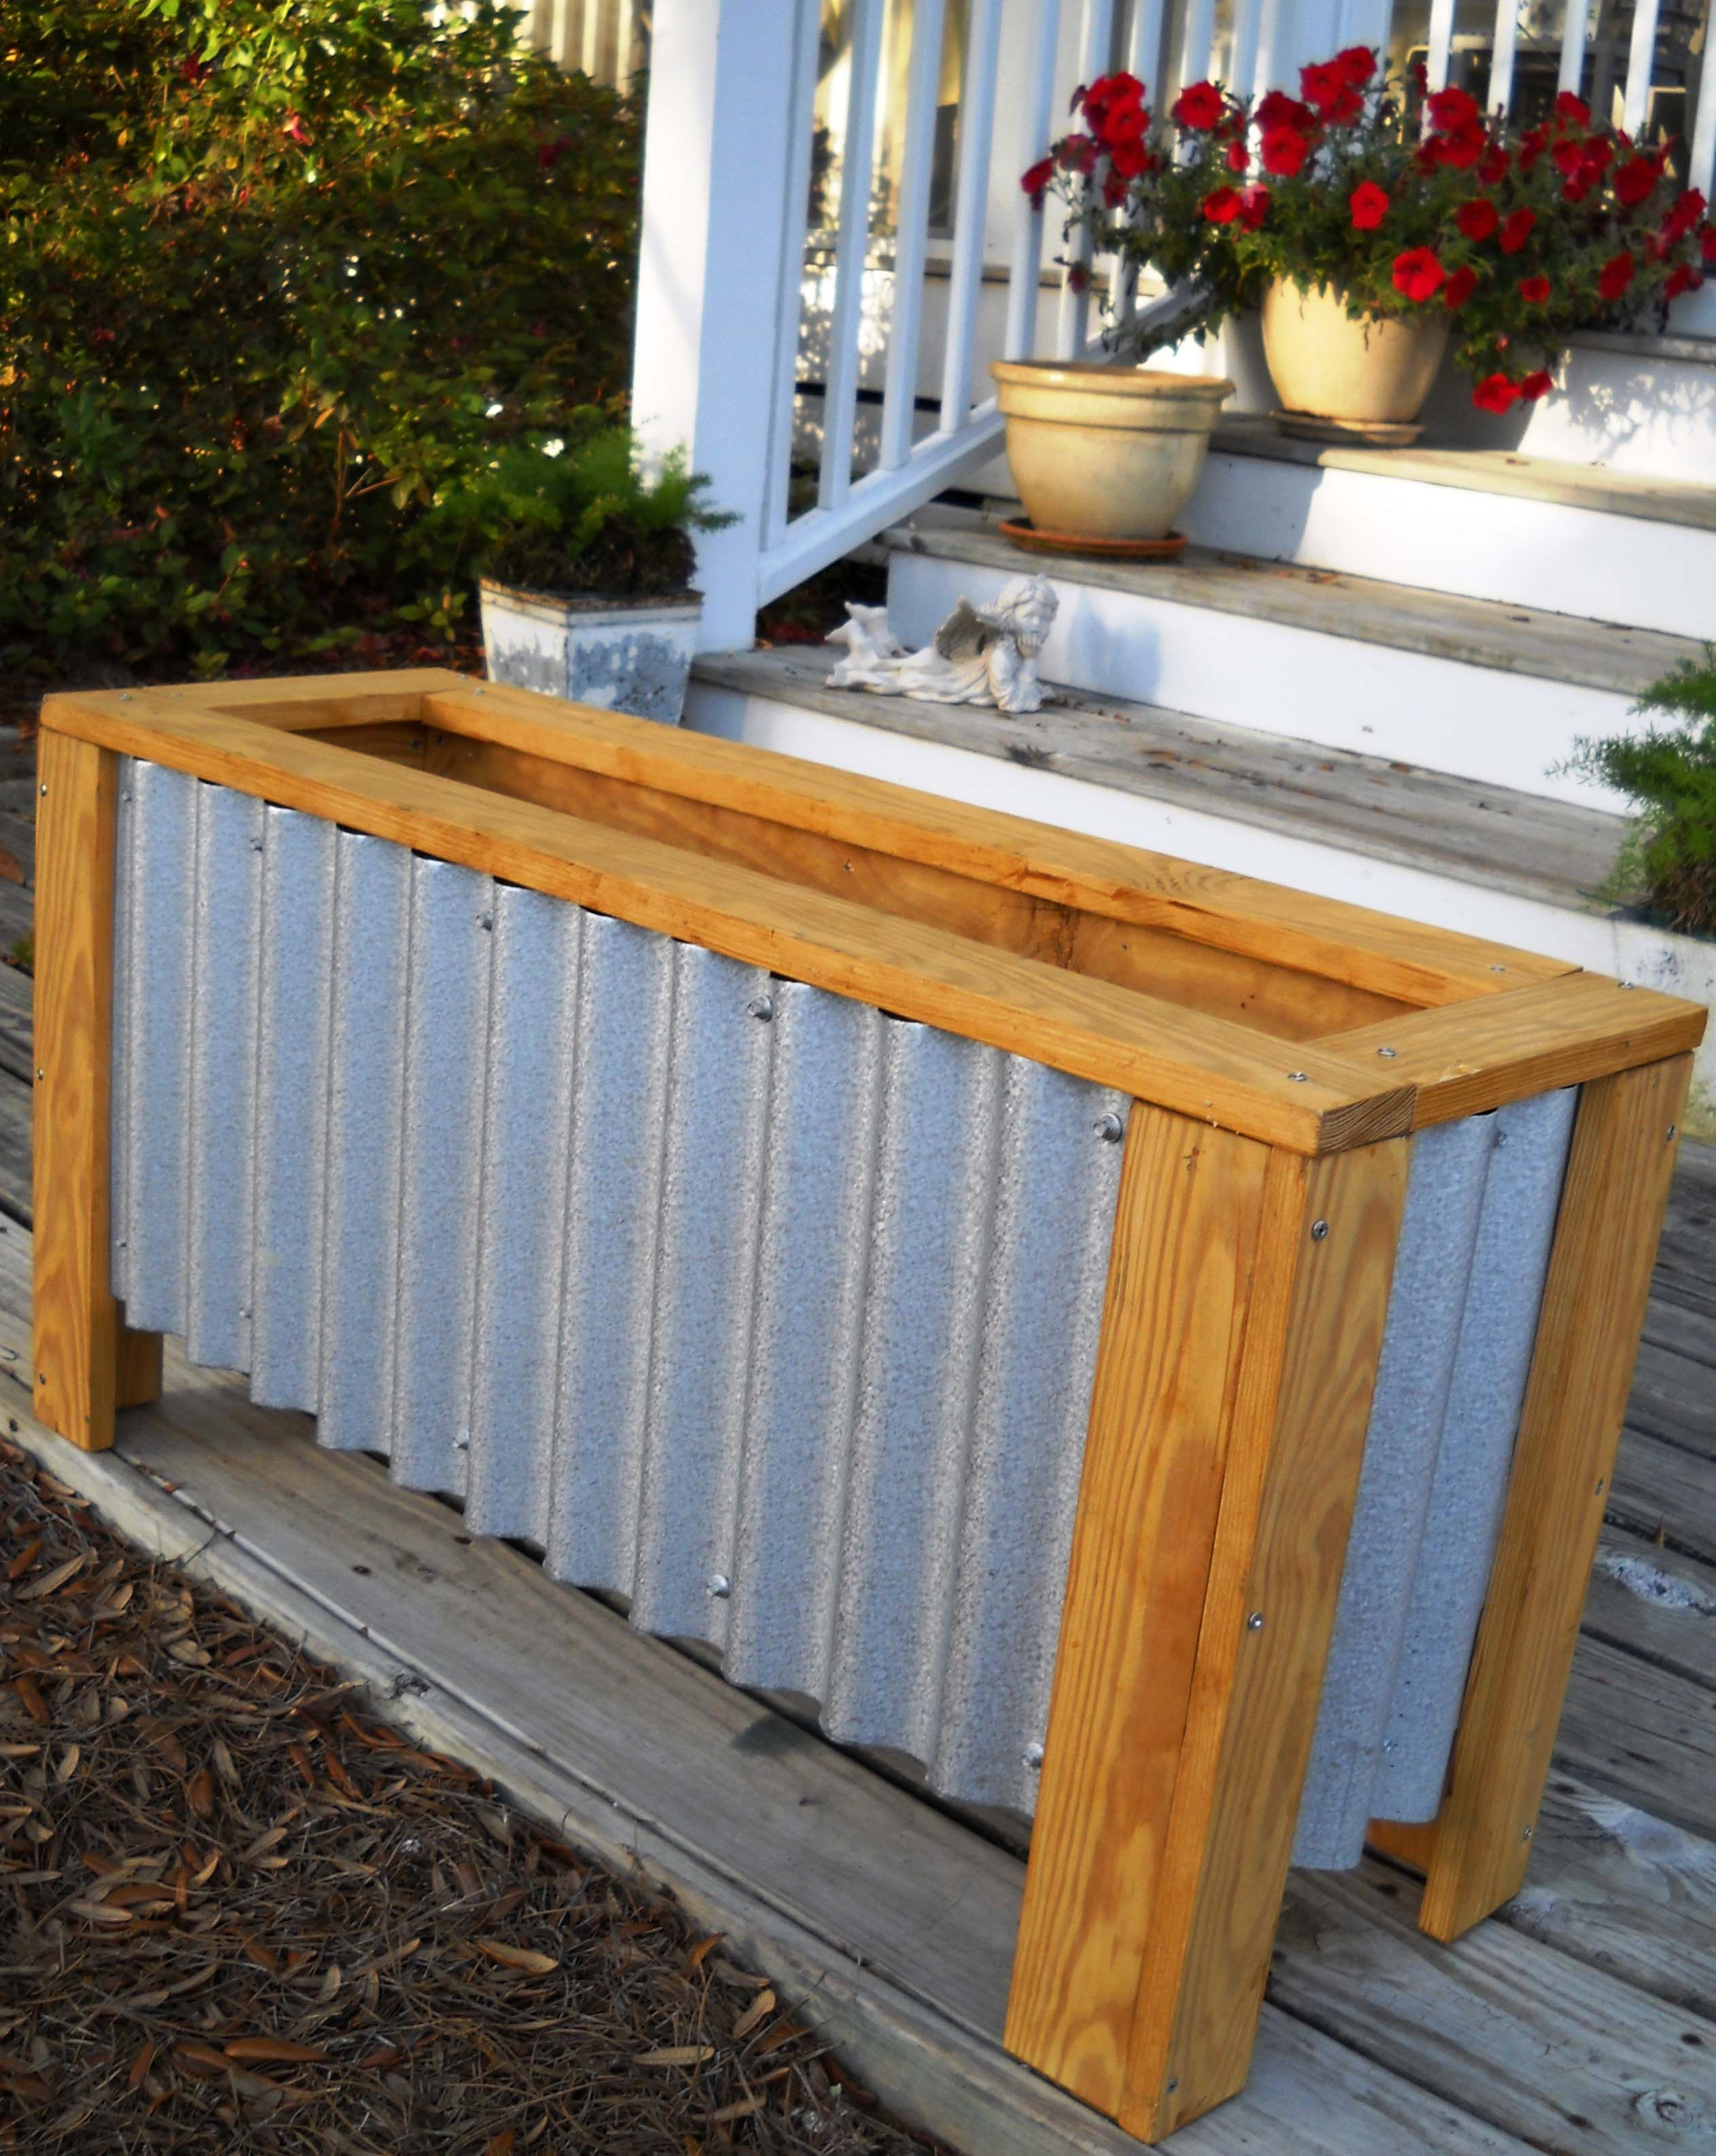 diy corregated tin planter box how to diy wooden on easy diy woodworking projects to decor your home kinds of wooden planters id=17322